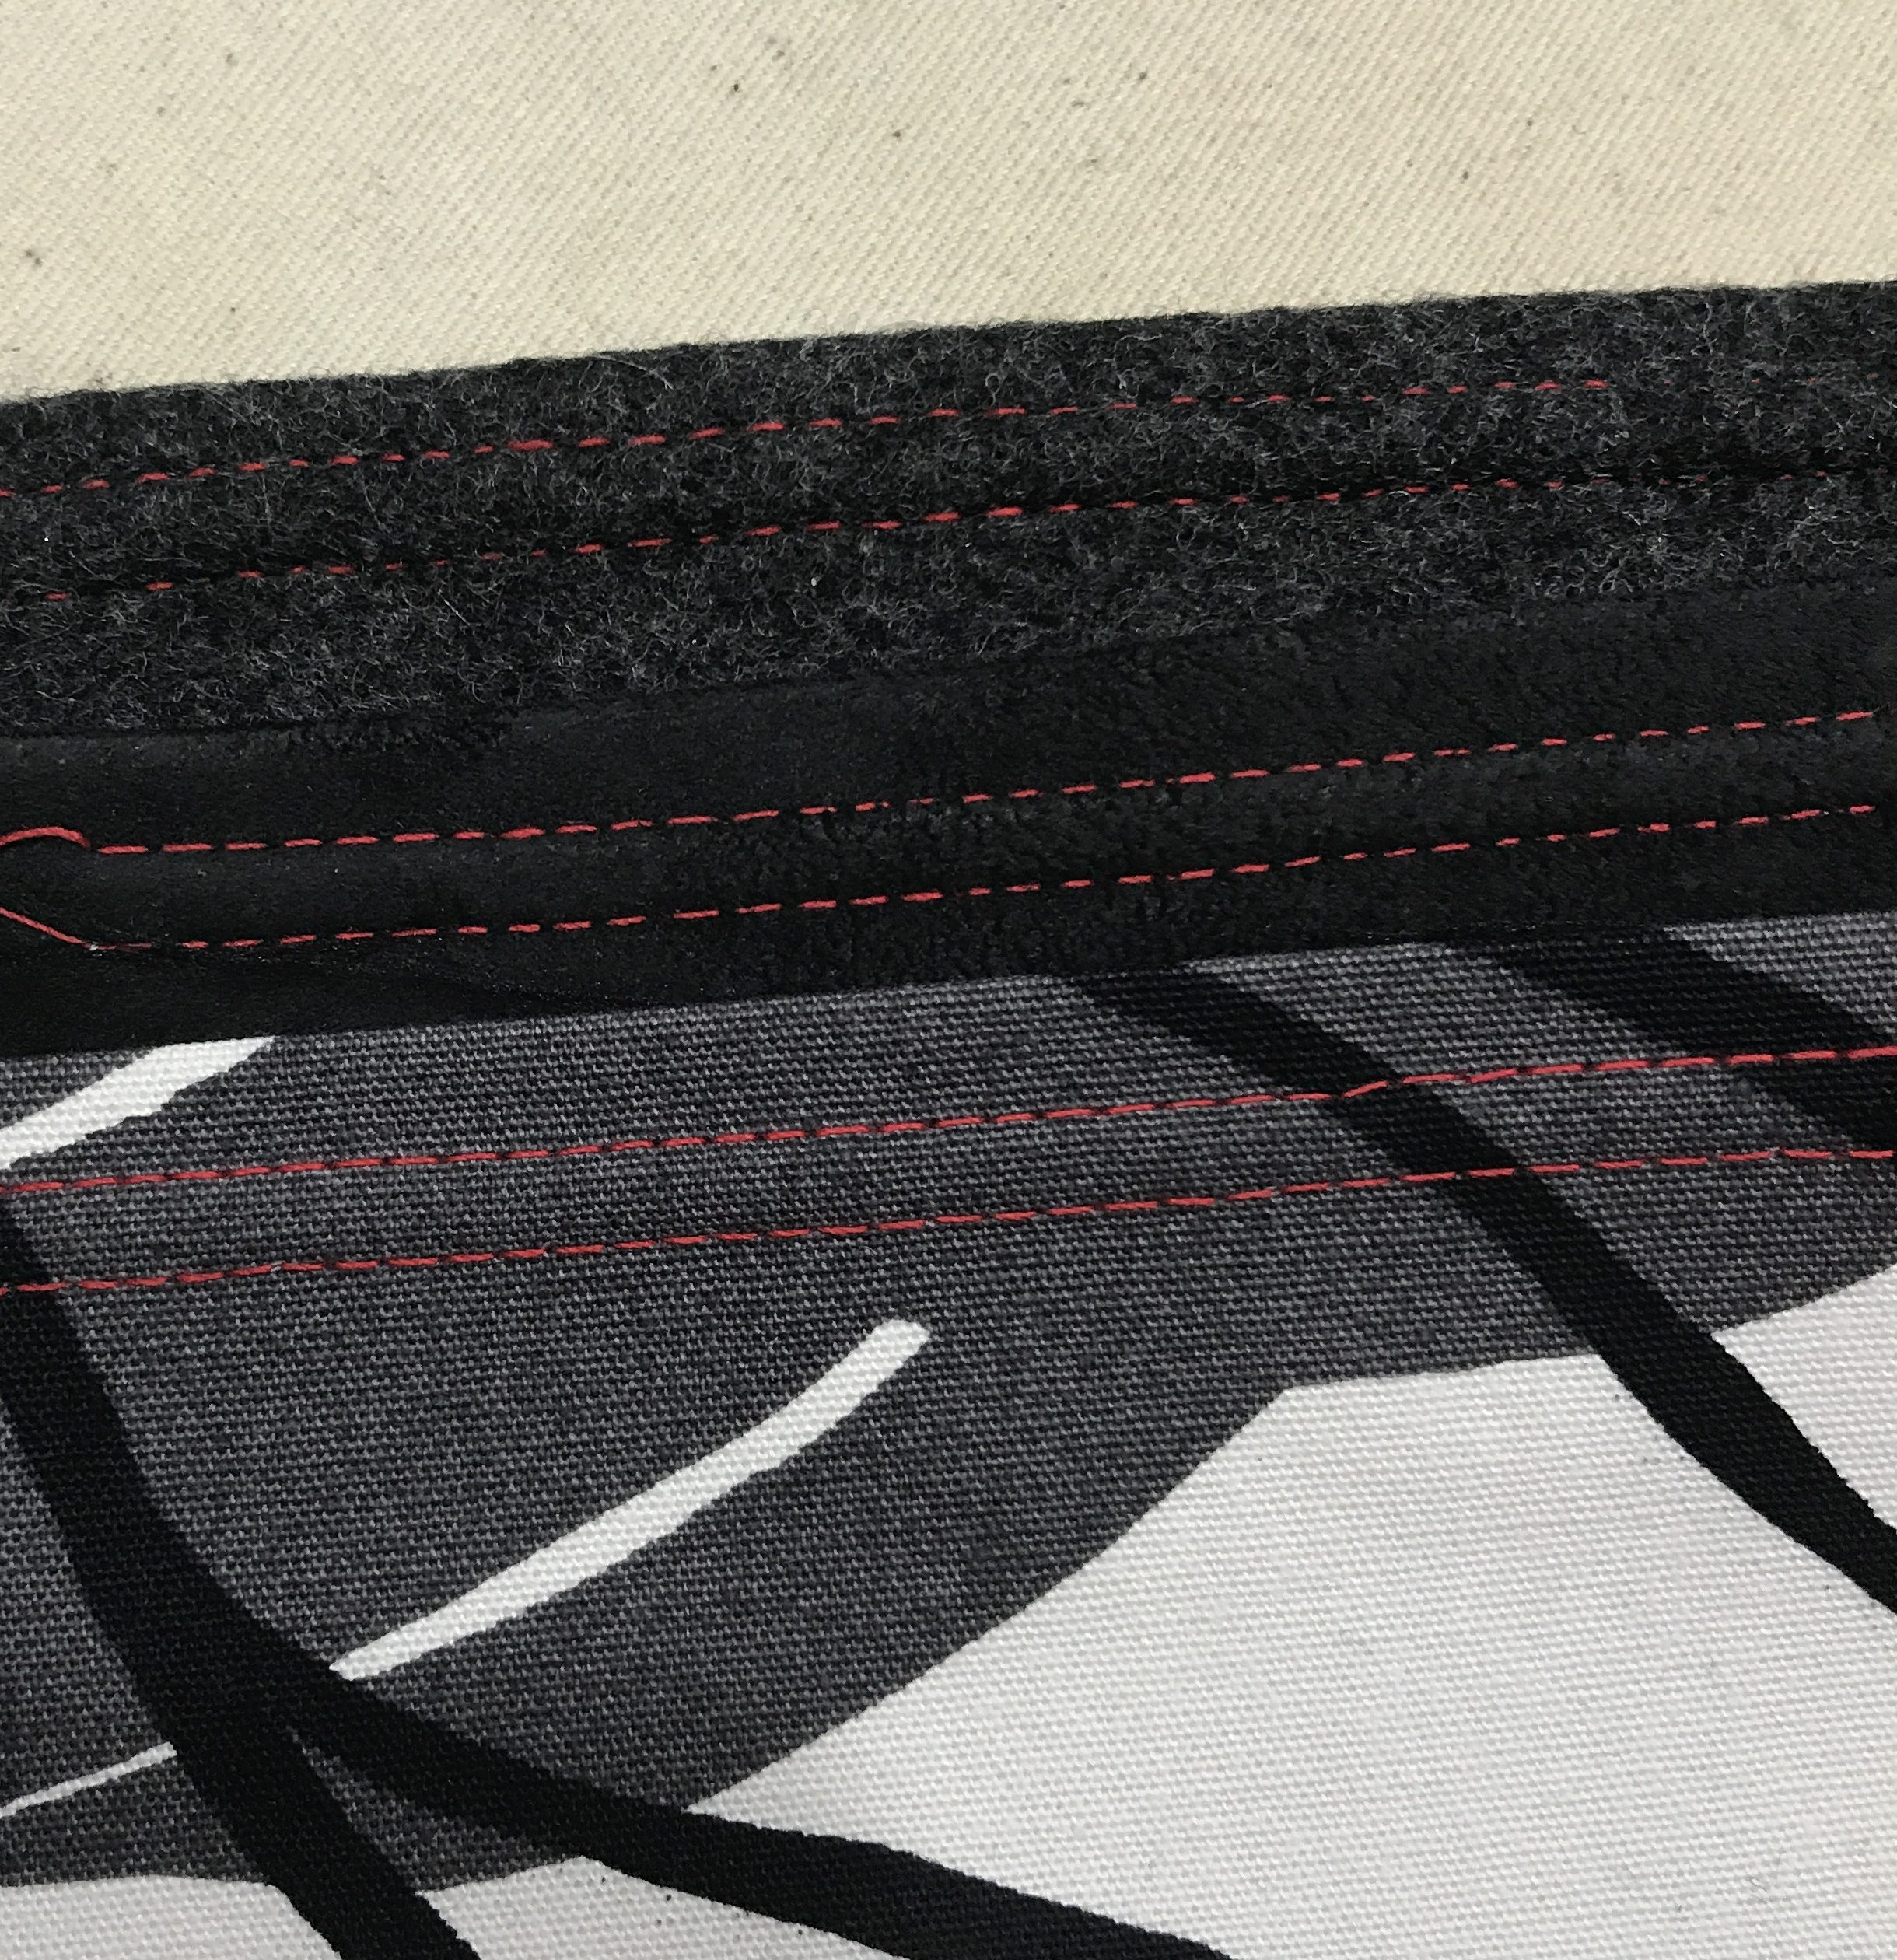 What's What: Top-, Edge-, and Under-stitching